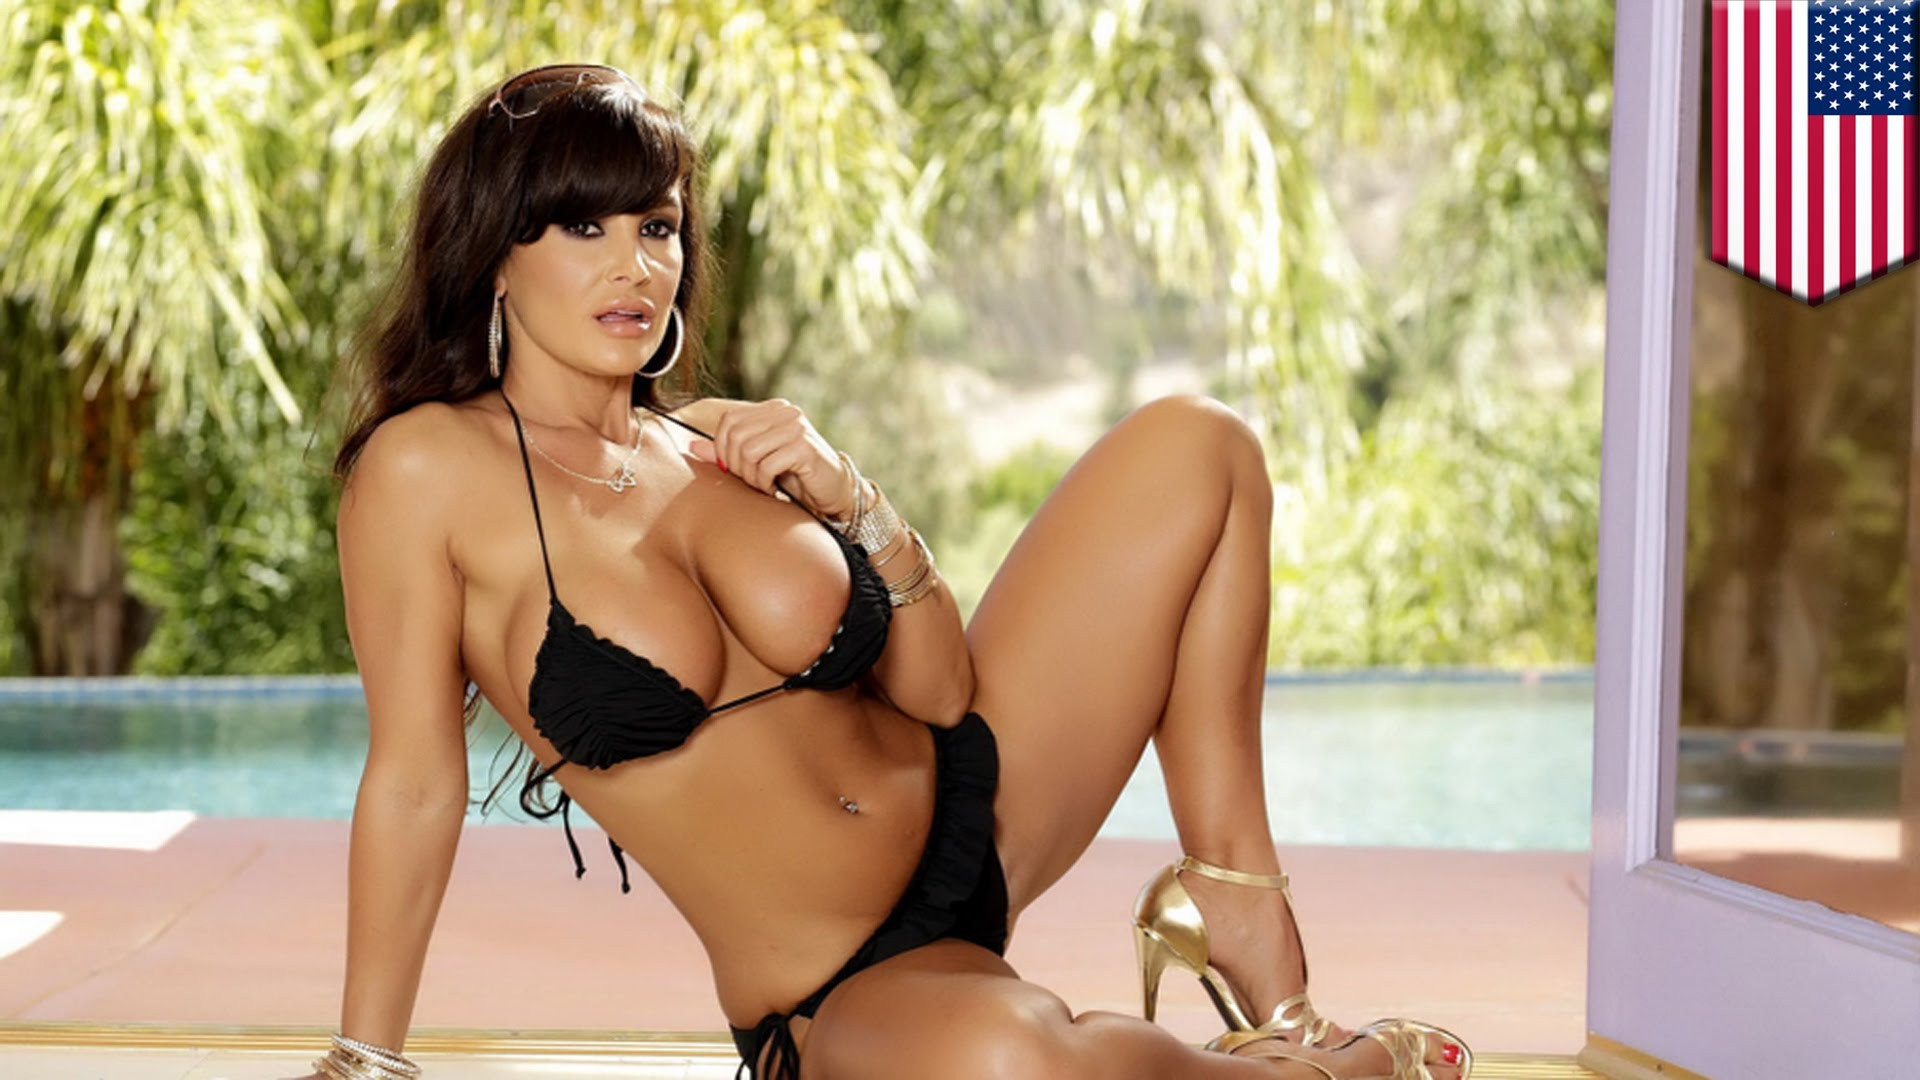 Lisa Ann Bikini Wallpapers